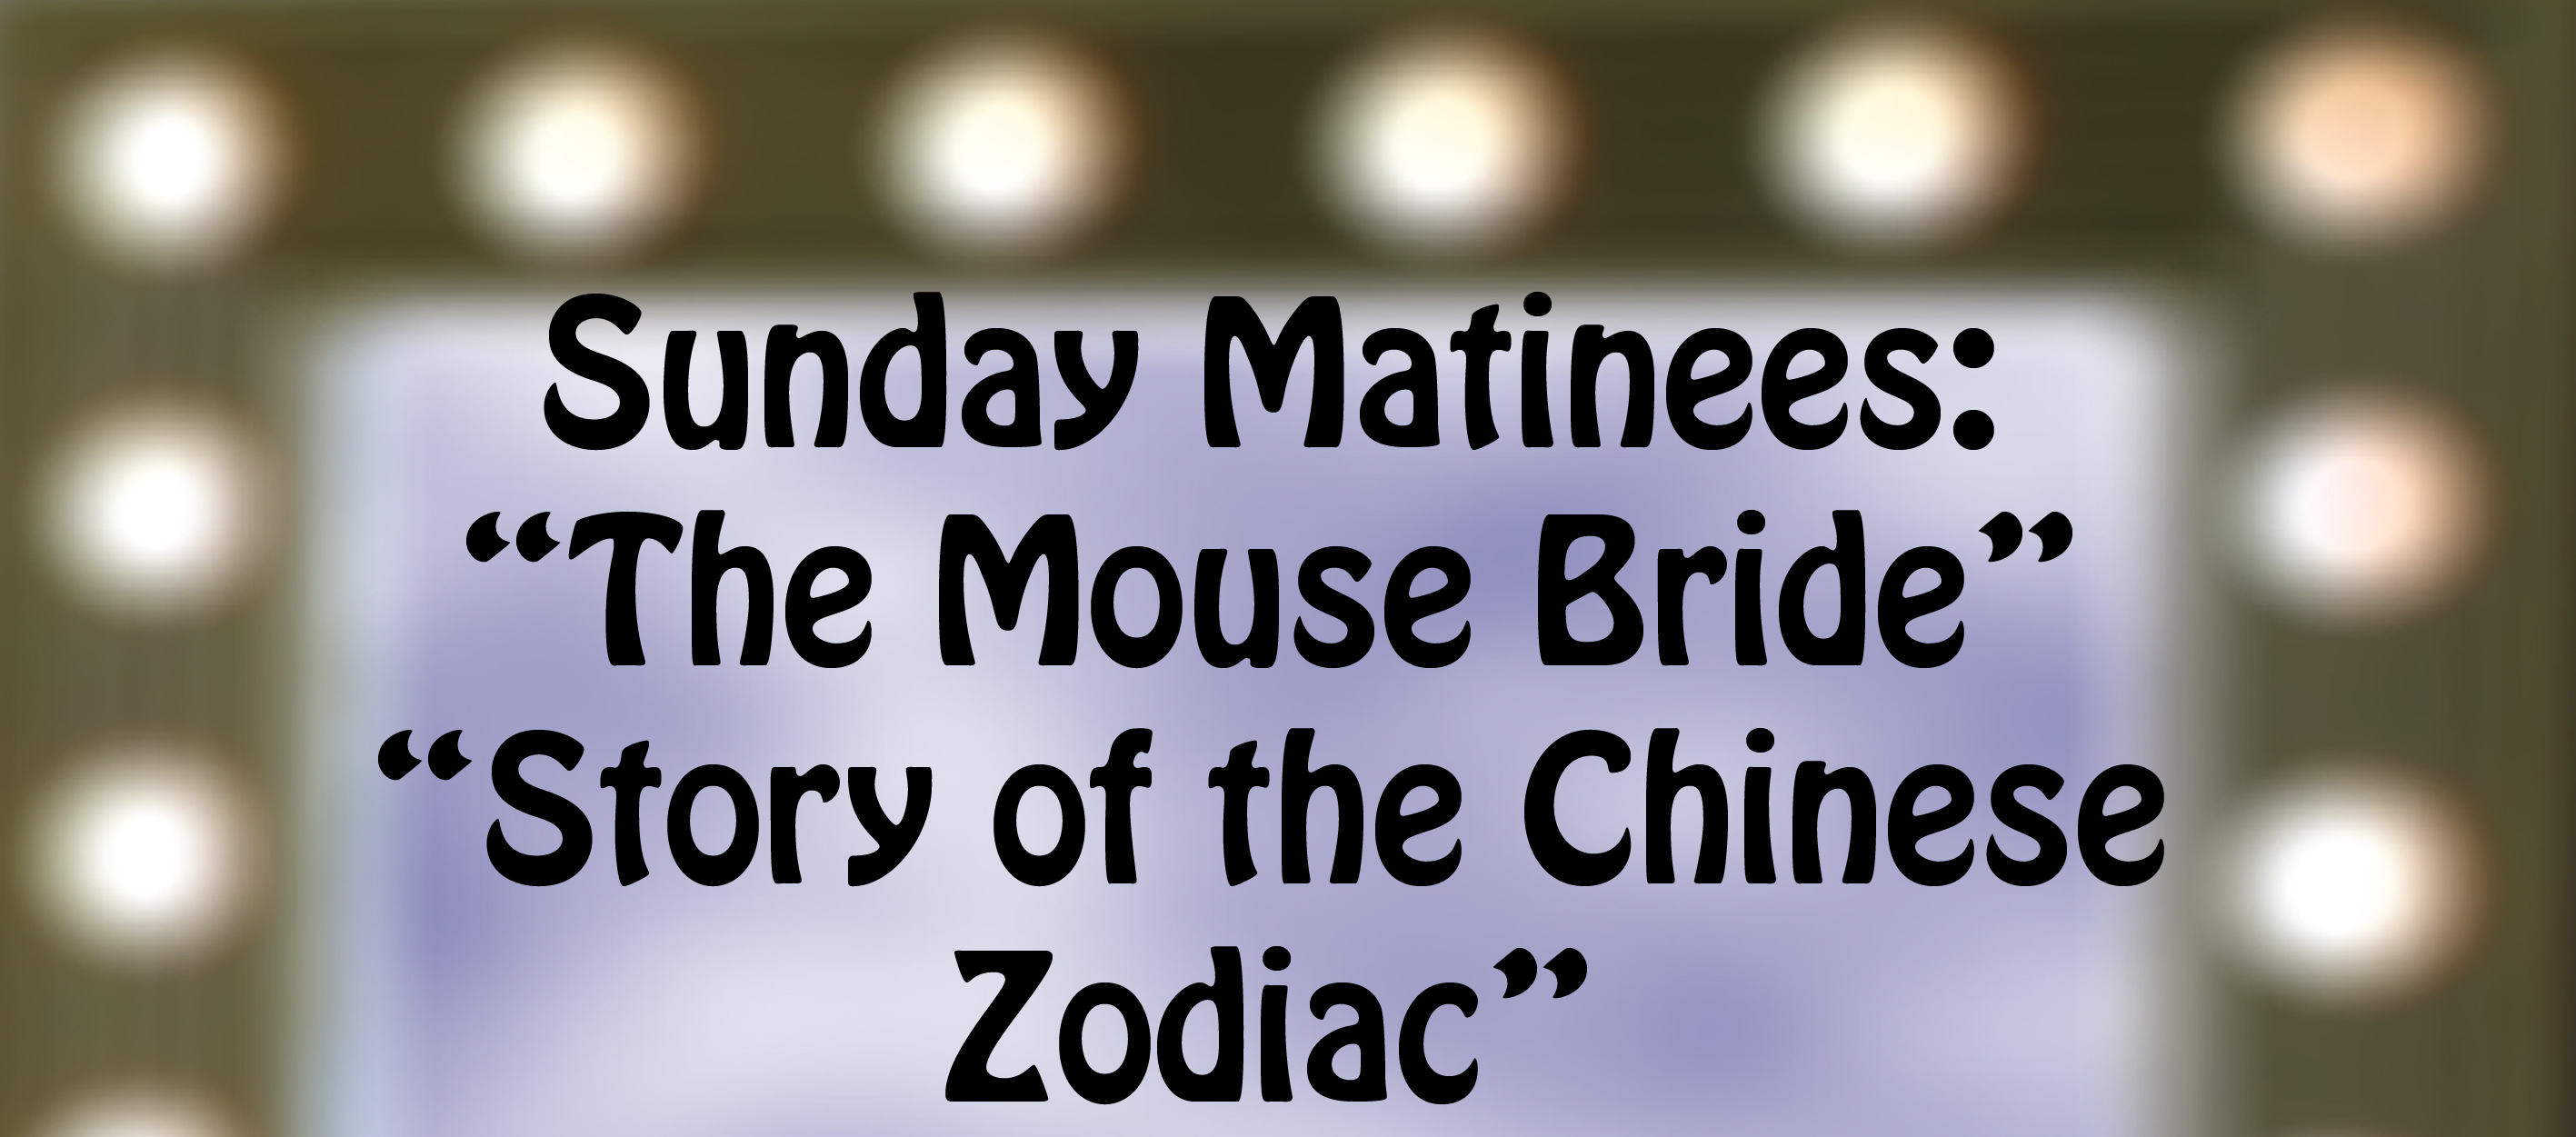 "Sunday Matinees: ""The Mouse Bride"" and ""Story of the Chinese Zodiac"